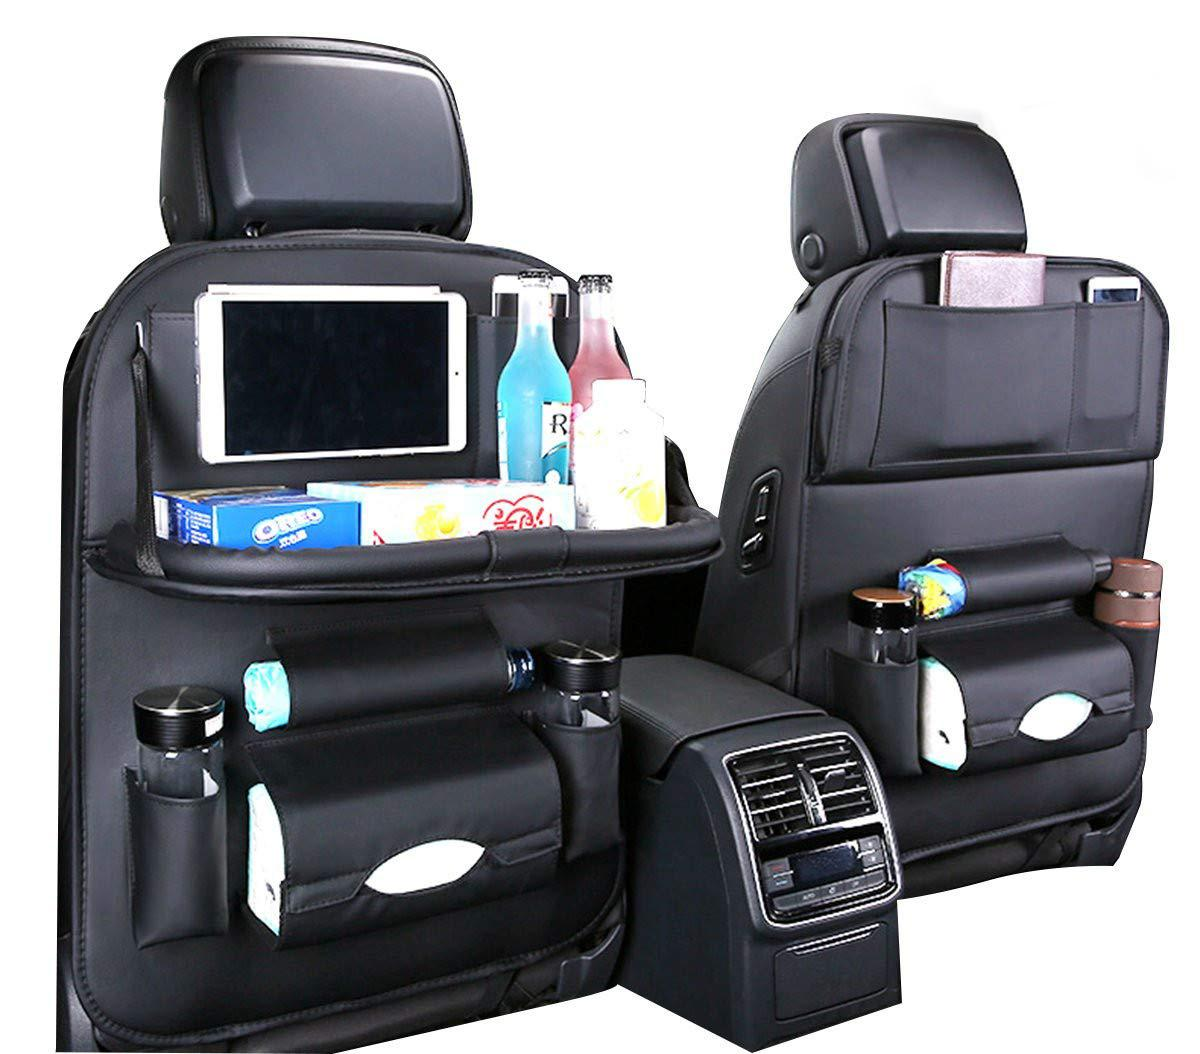 with tablet stand rear seat suitable for children baby adult car seat cover multi-pocket car back seat storage bag kick pad foldable table Car seat back multi-function storage bag 1 piece black